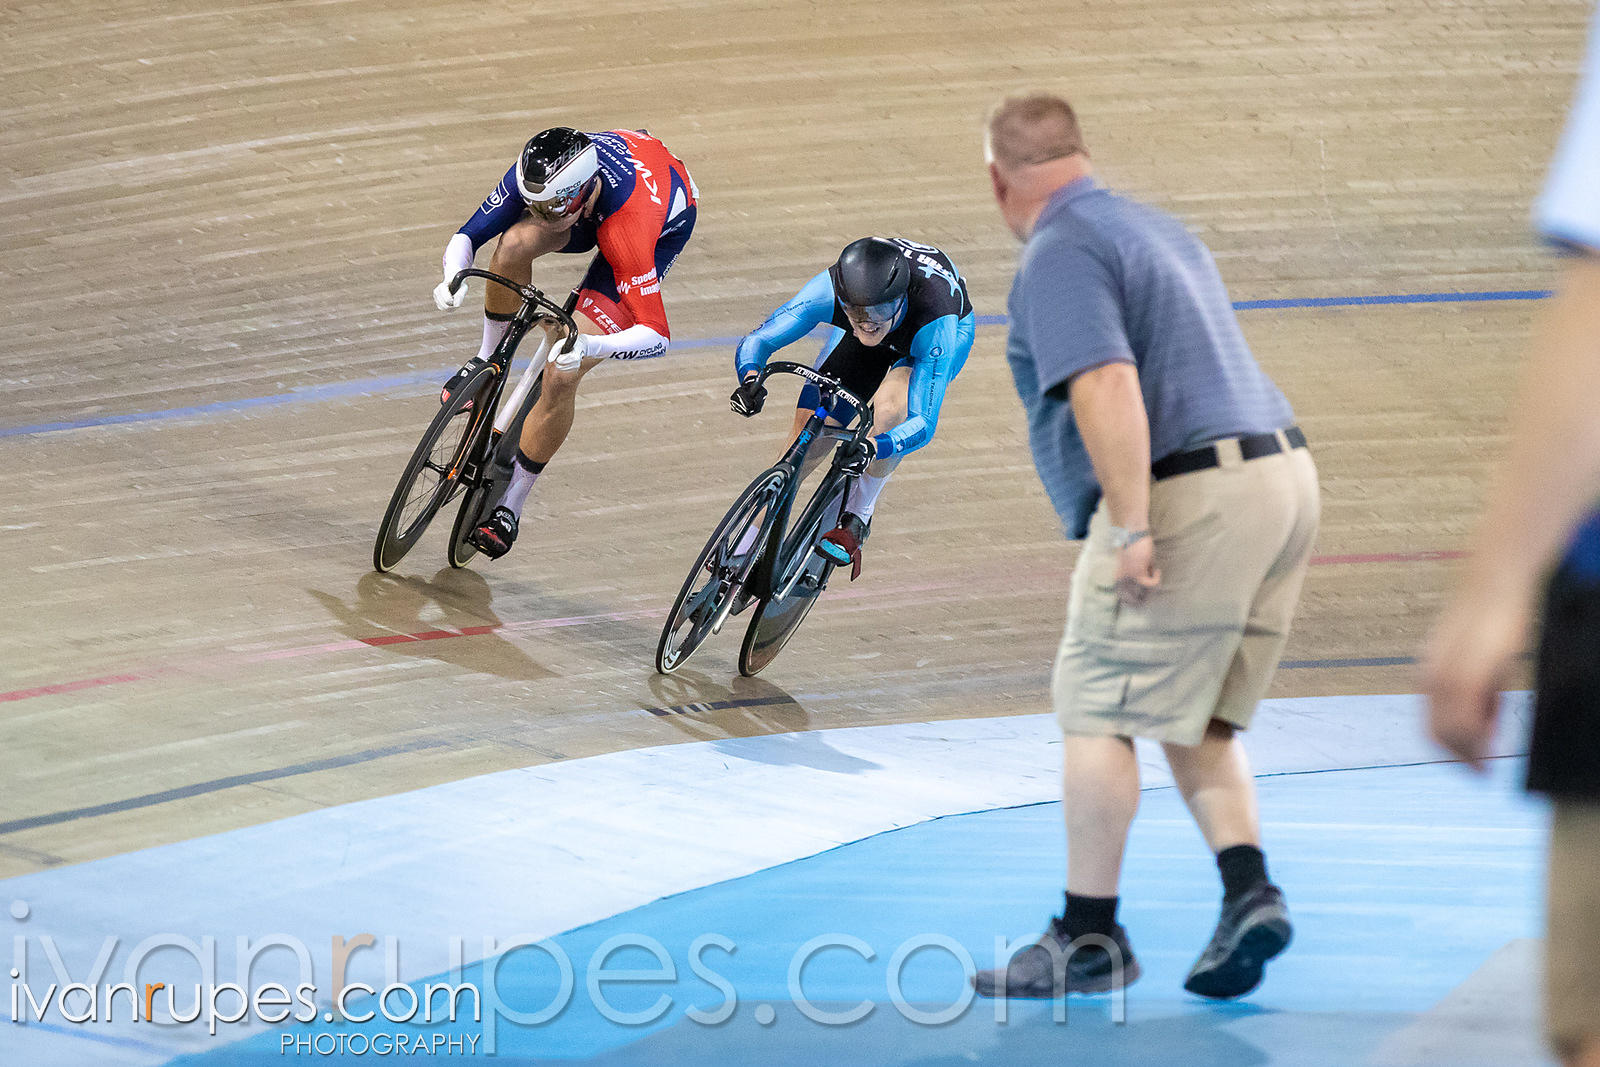 Men Sprint 1-2 Final. Ontario Track Championships, March 2, 2019